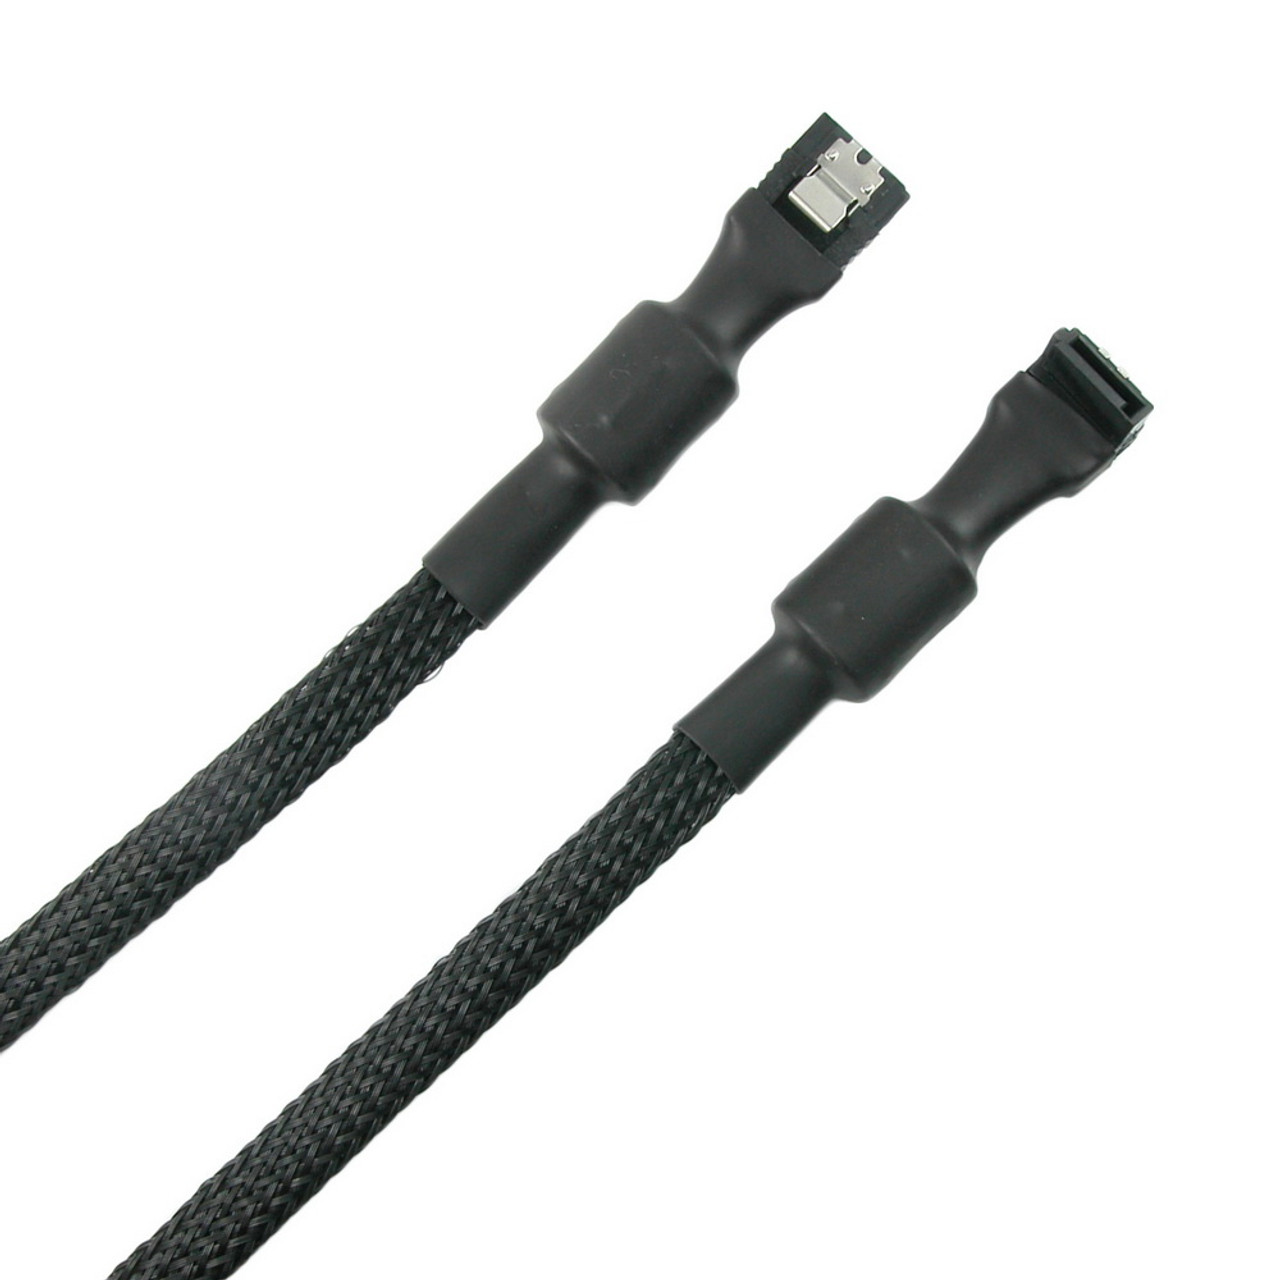 Product image for 50cm Simplecom CA110L Premium SATA 3 HDD SSD Data Cable Sleeved | CX Computer Superstore